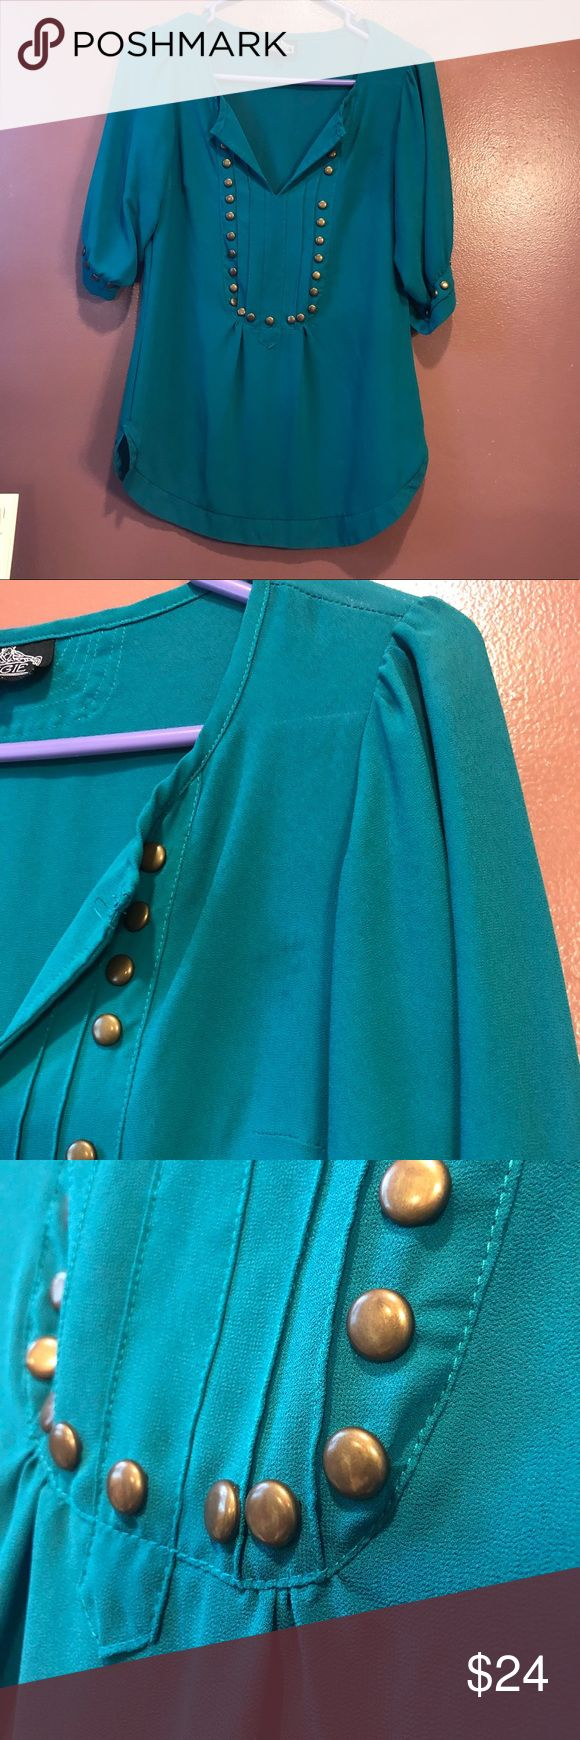 Boutique Teal Blouse Lovely Angie Brand Small Teal Top, in good Used Condition there is a few spots (see pics) that it just needs to be rewarded.. I used wrong washing detergent for the material... no liquid-FYI! Lol Angie Tops Blouses